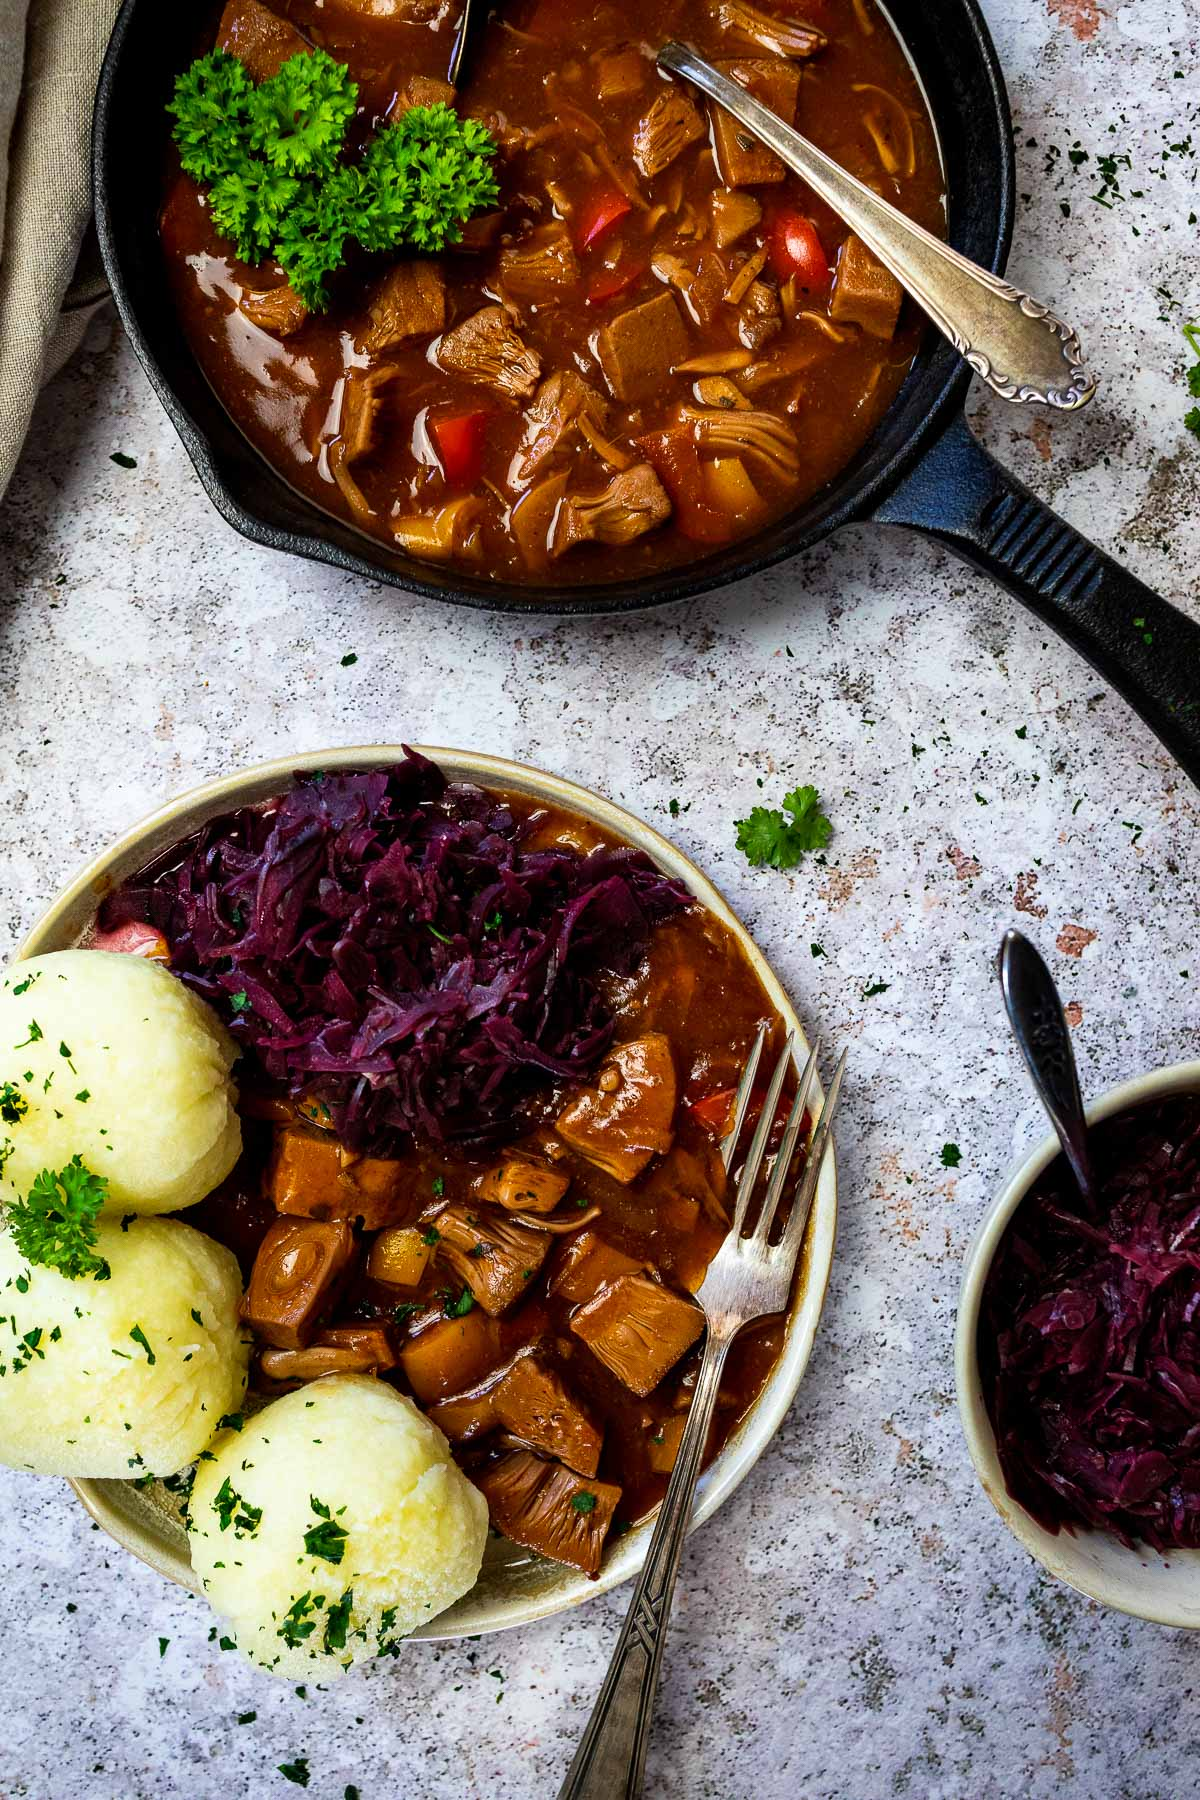 Vegan Hungarian Goulash served with potato dumplings and sauteed red cabbage and hungarian goulash in a cast iron pan.